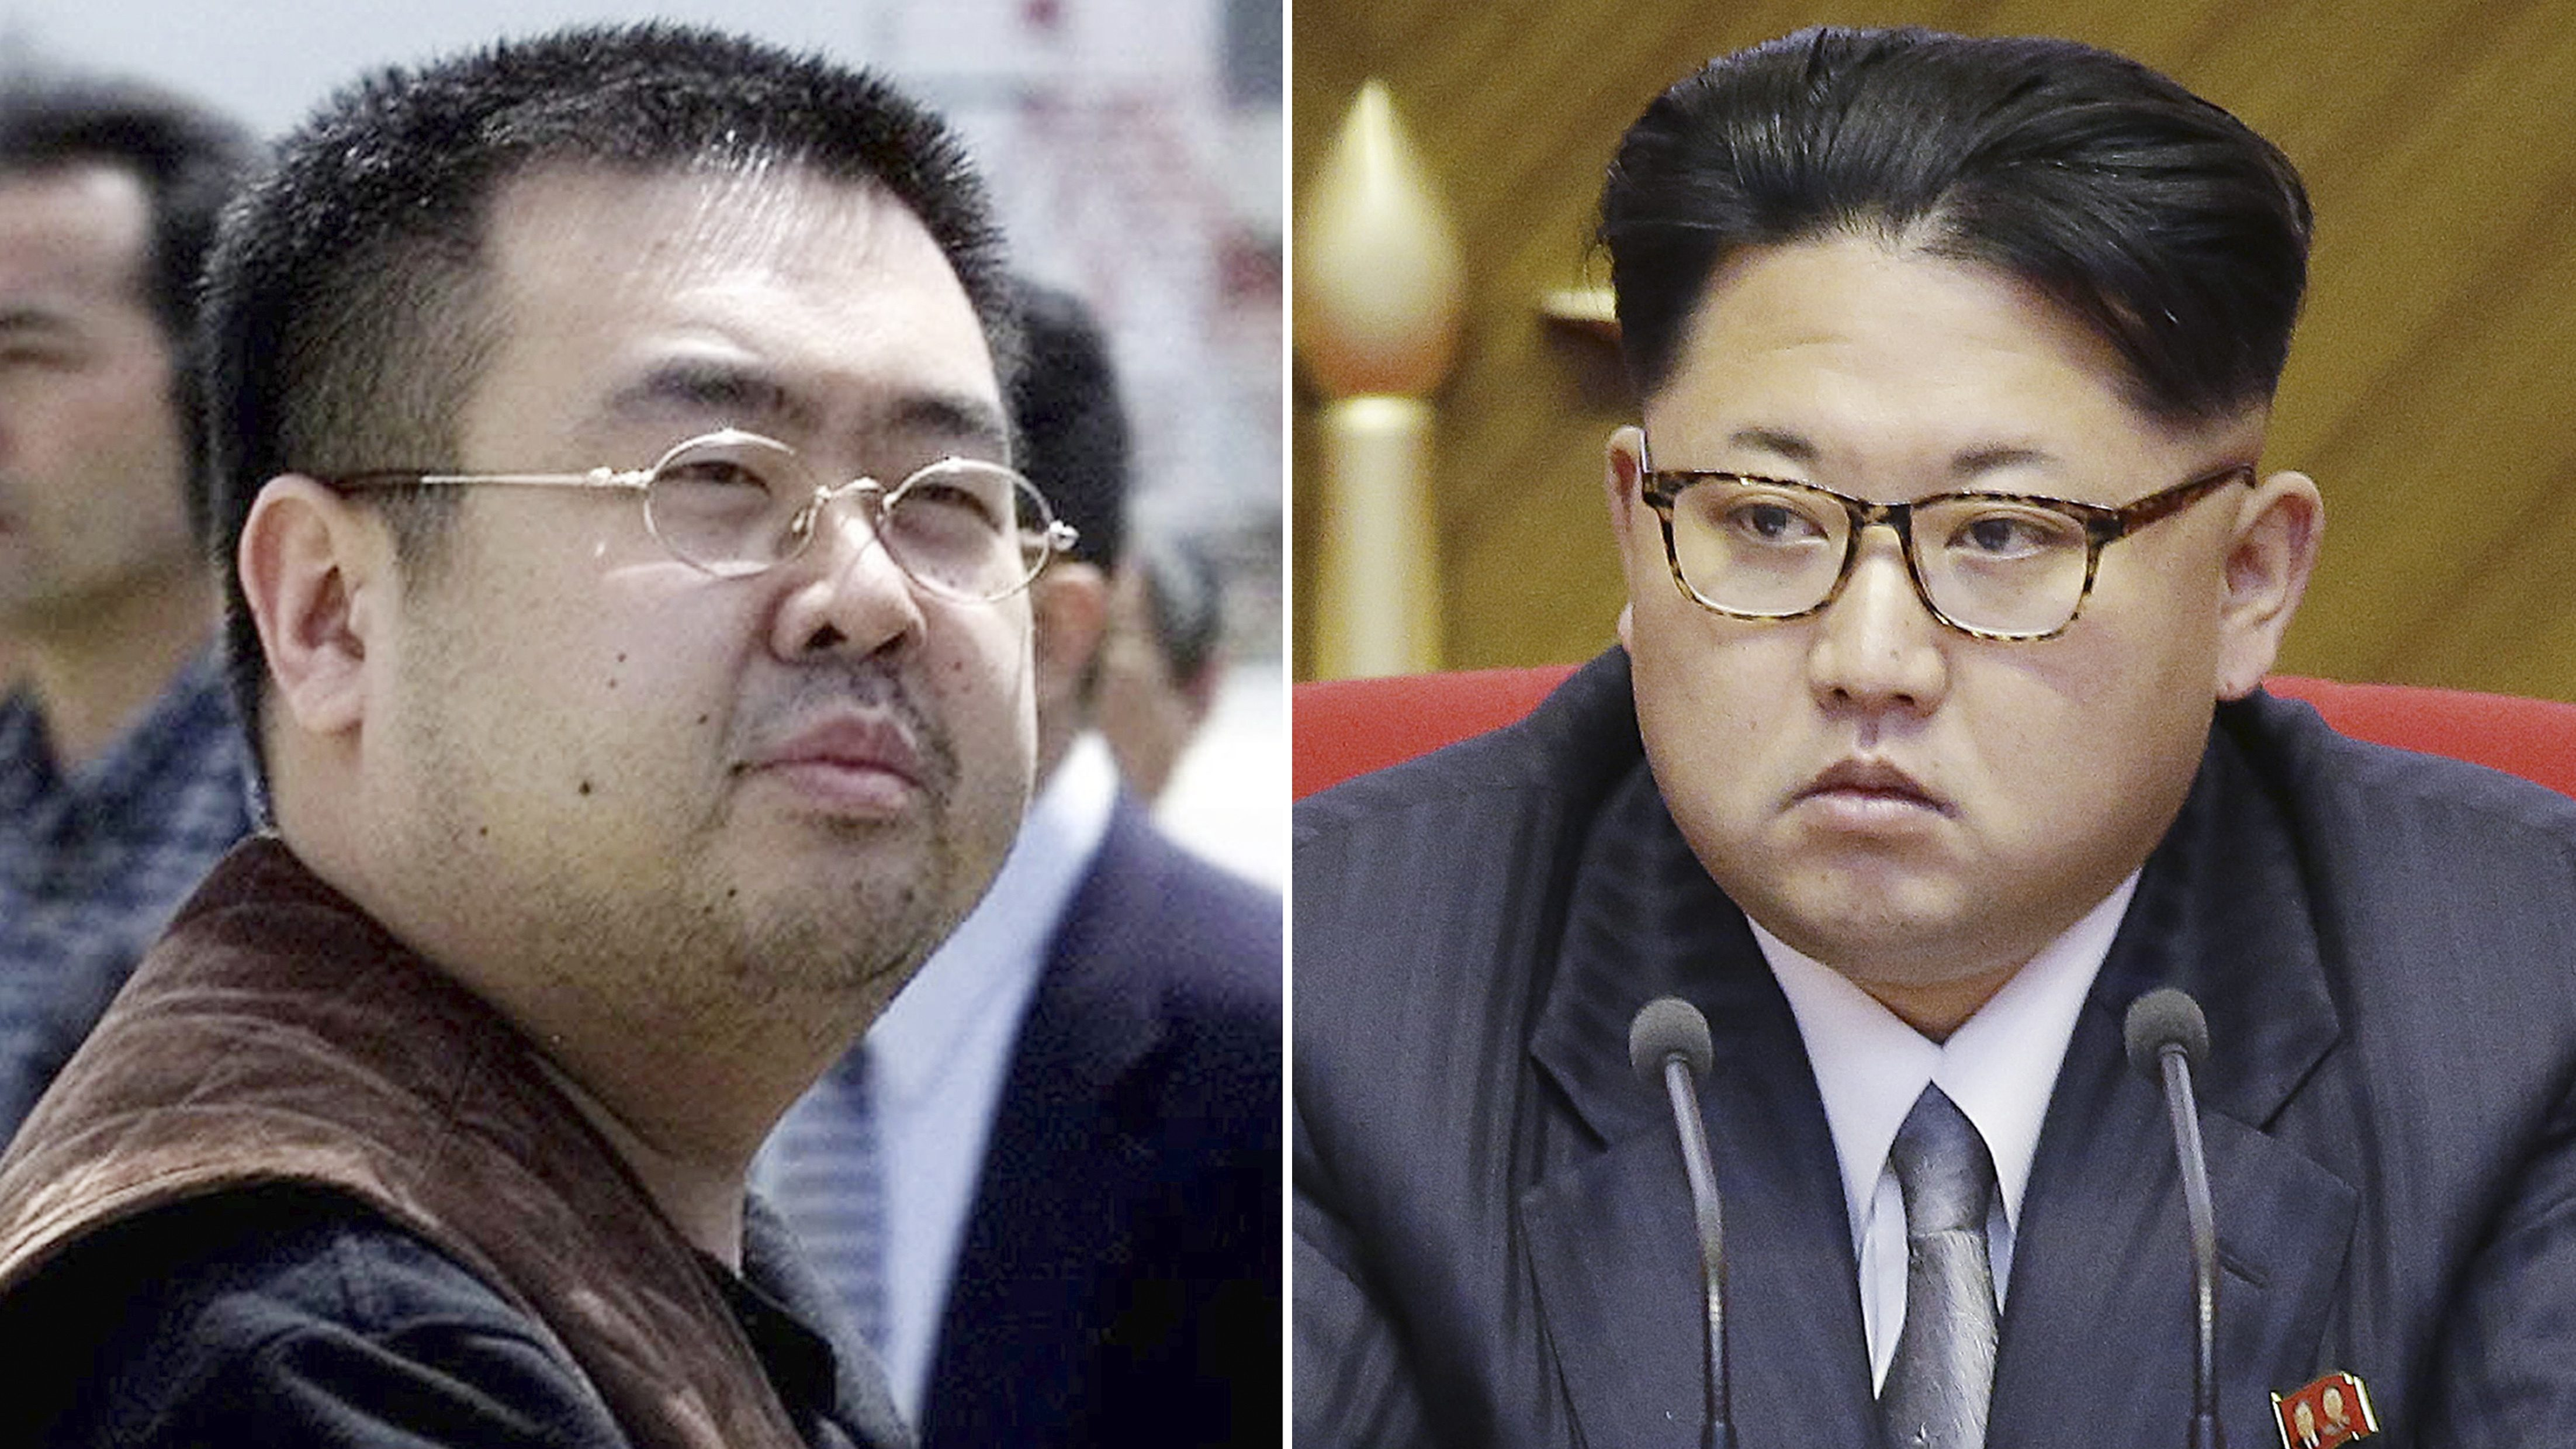 This combination of file photos shows Kim Jong Nam, left, exiled half-brother of North Korea's leader Kim Jong Un, in Narita, Japan, on May 4, 2001, and North Korean leader Kim Jong Un on May 9, 2016, in Pyongyang, North Korea. Two women accused of poisoning Kim in a bizarre airport assassination are expected to plead innocent when they appear in a Malaysian court on Friday, July 28, 2017. Indonesian Siti Aisyah and Vietnamese Doan Thi Huong are suspected of smearing Kim Jong Nam's face with the banned VX nerve agent at a crowded airport terminal on Feb. 13. The women, who face the death penalty if convicted, said they thought they were playing a harmless prank for a hidden-camera show.